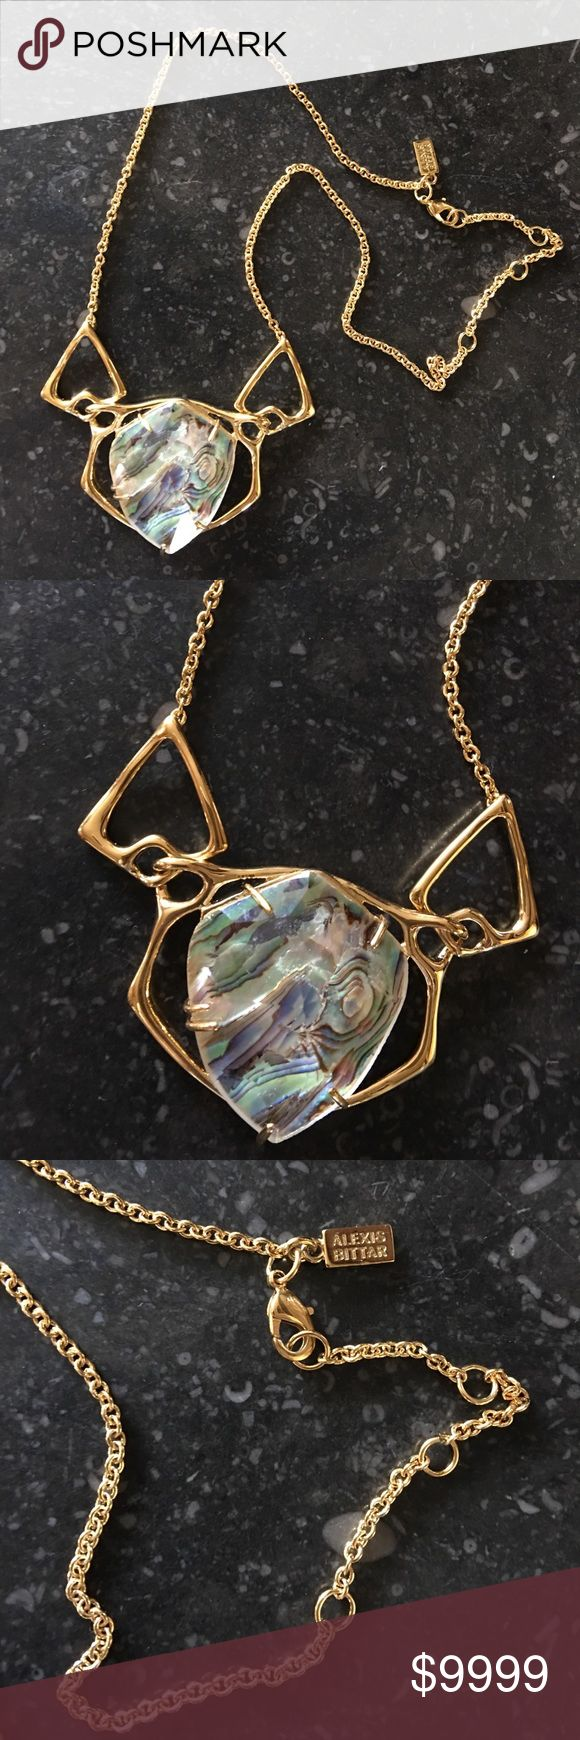 """🔥SALE Alexis Bittar Stone Crystal + Gold Necklace Alexis Bittar Abalone Crystal + Gold Necklace • Pendant is 3""""x1.5"""" • Necklace length is 17"""" with 3"""" extender notches. Brand new! No tags never worn. Please check out my other Alexis Bittar & jewelry items. Bundle & Save! Alexis Bittar Jewelry Necklaces"""